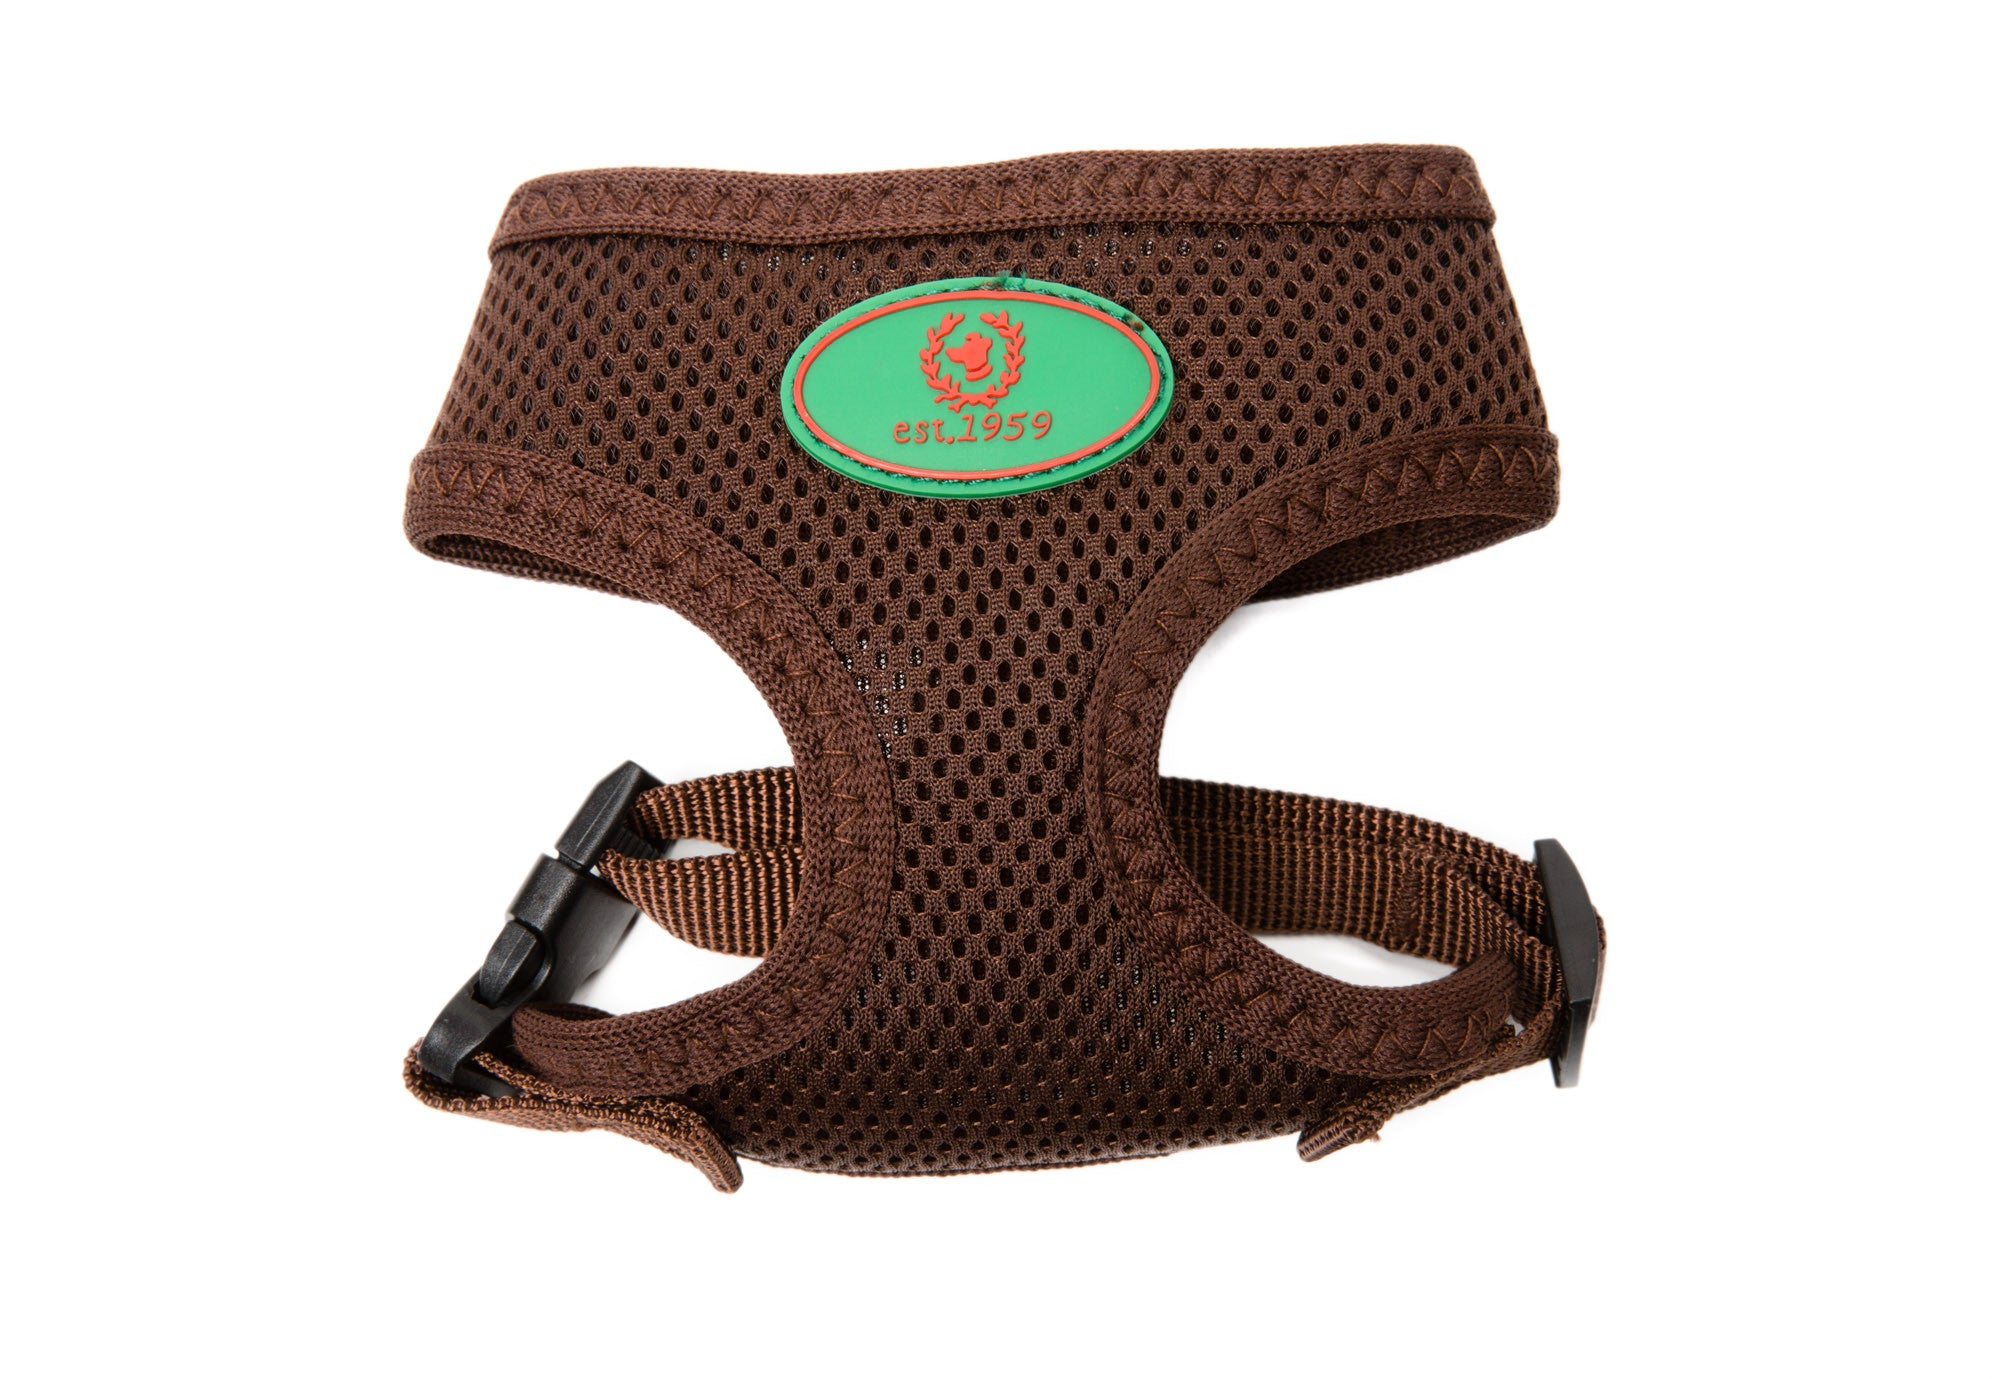 Soft Dog Harnesses - Mesh Harness - 7 Color Options